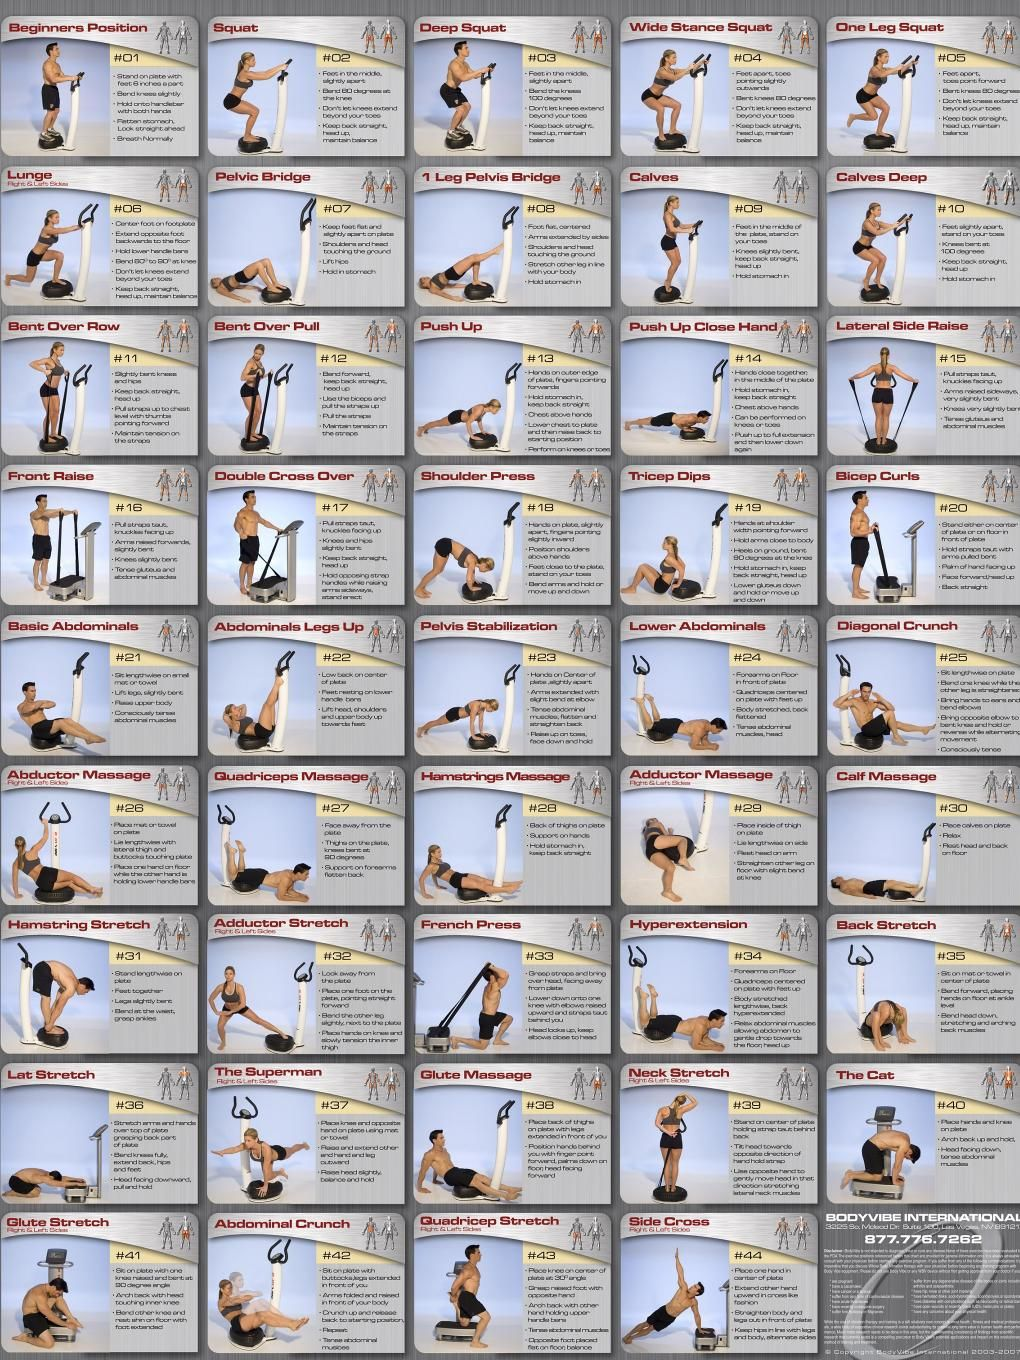 Vibefit whole body vibration exercise chart also health and fitness rh pinterest